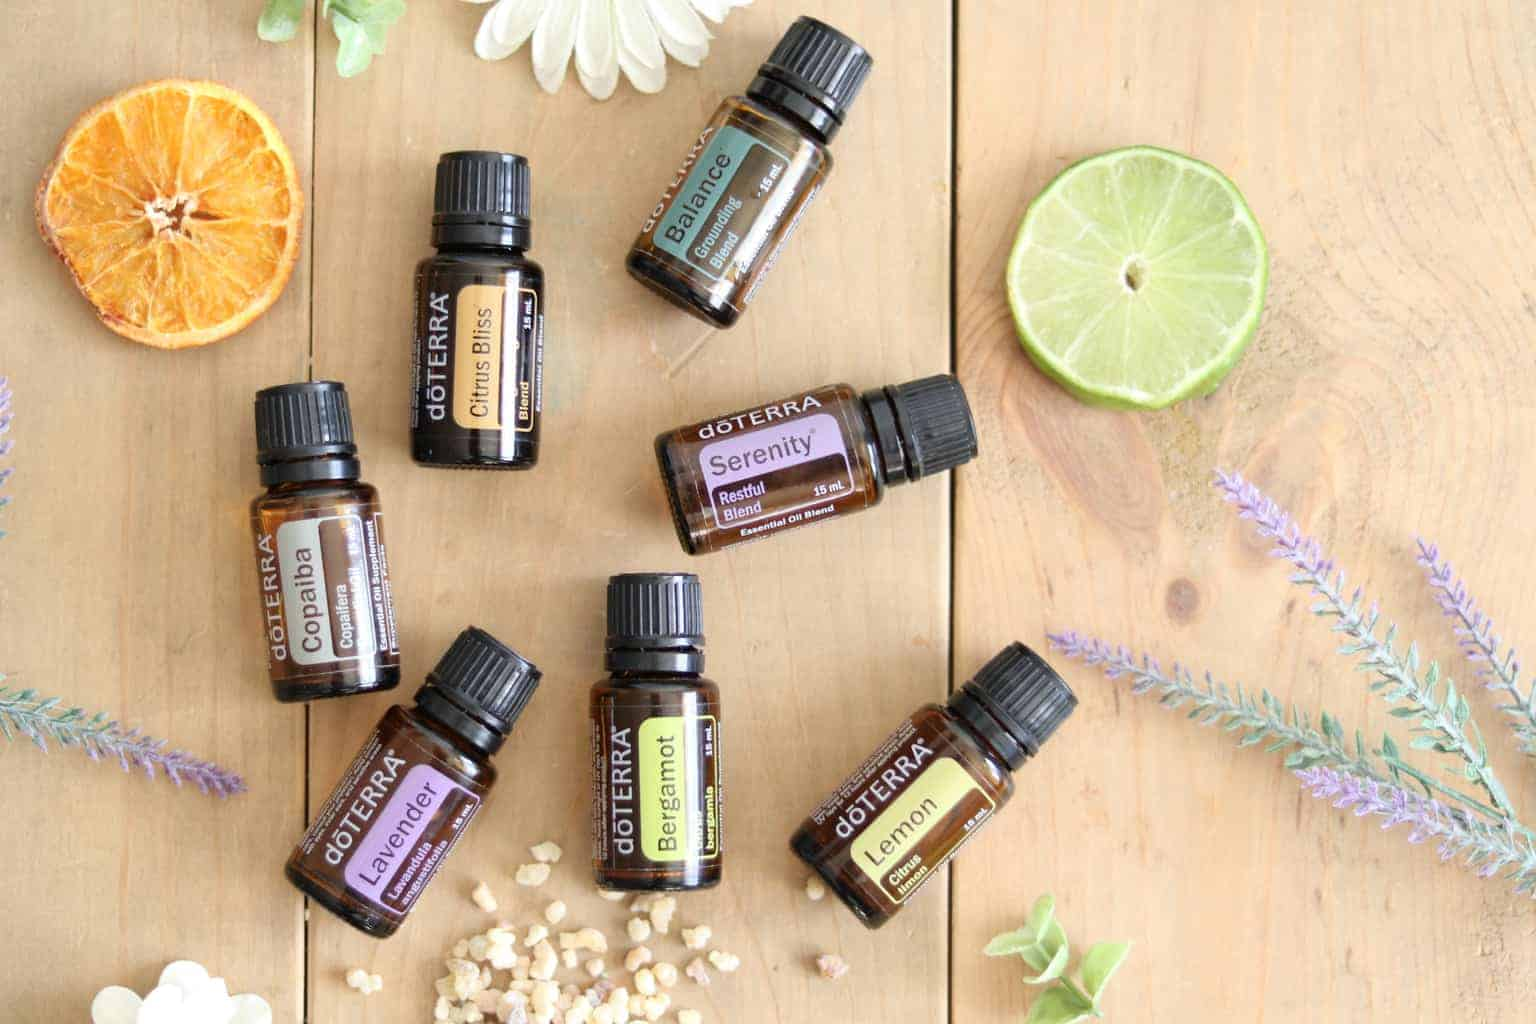 Essential oil roller bottles with dried flowers and fruits on wooden table.